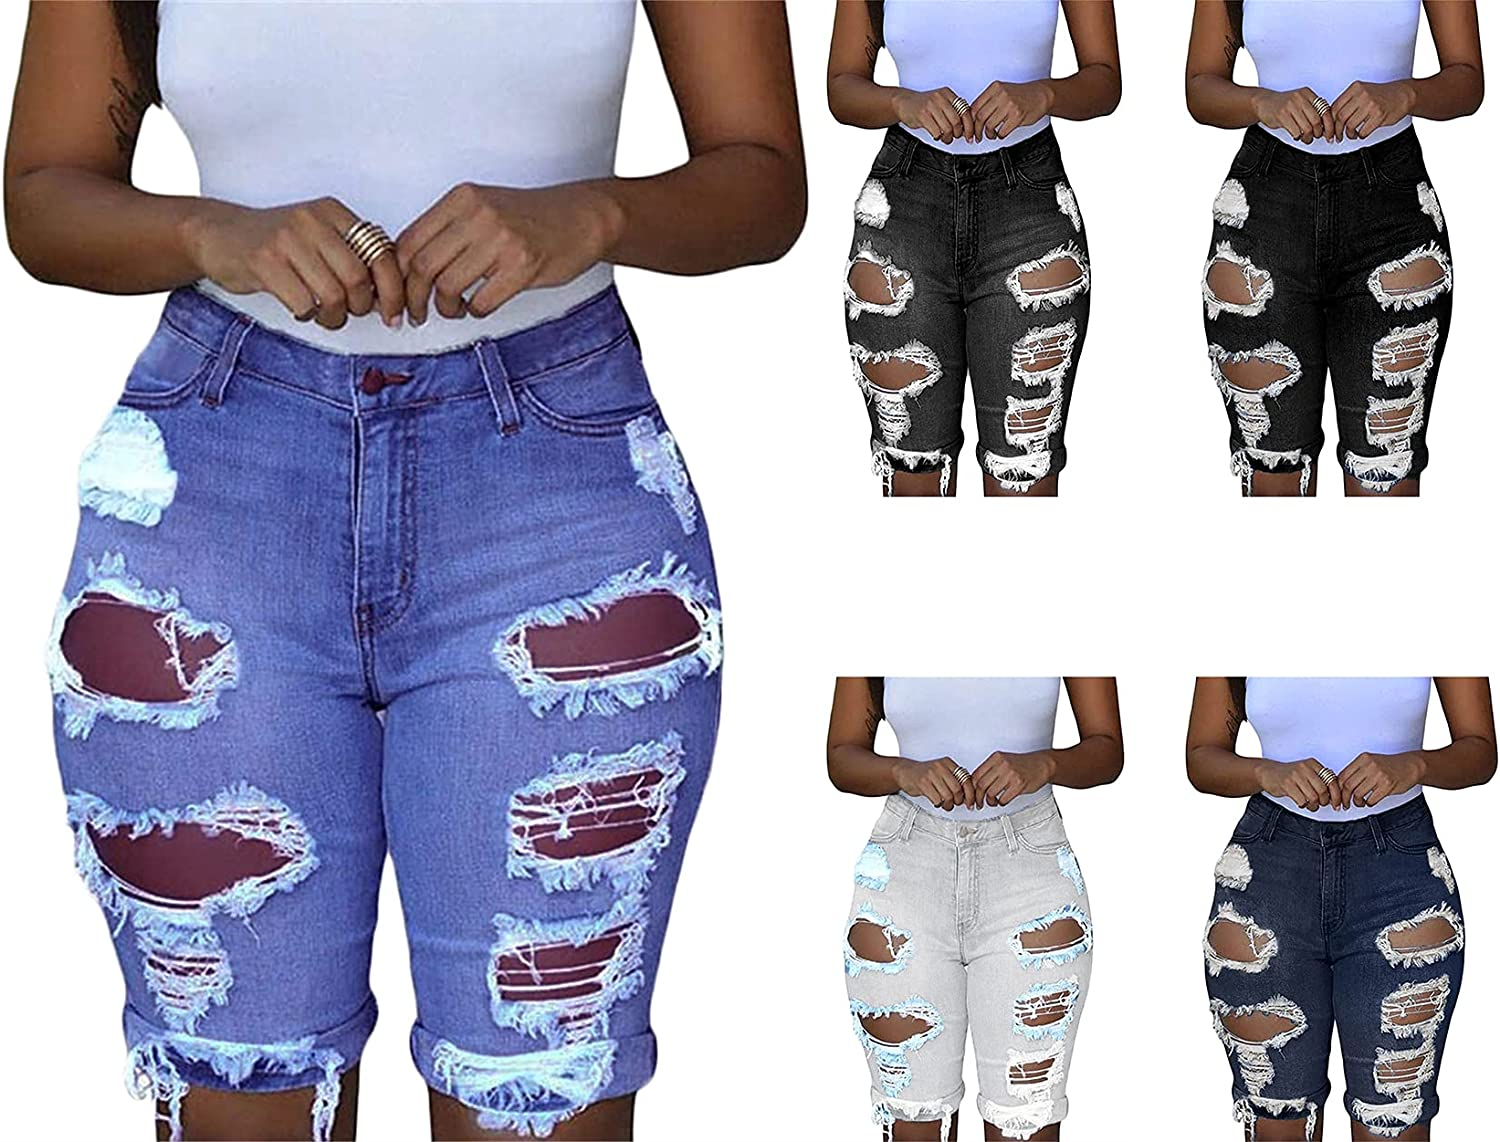 Andongnywell Women's Ripped Denim Destroyed High Rise Stretchy Bermuda Shorts Jeans with Zipper Buttons